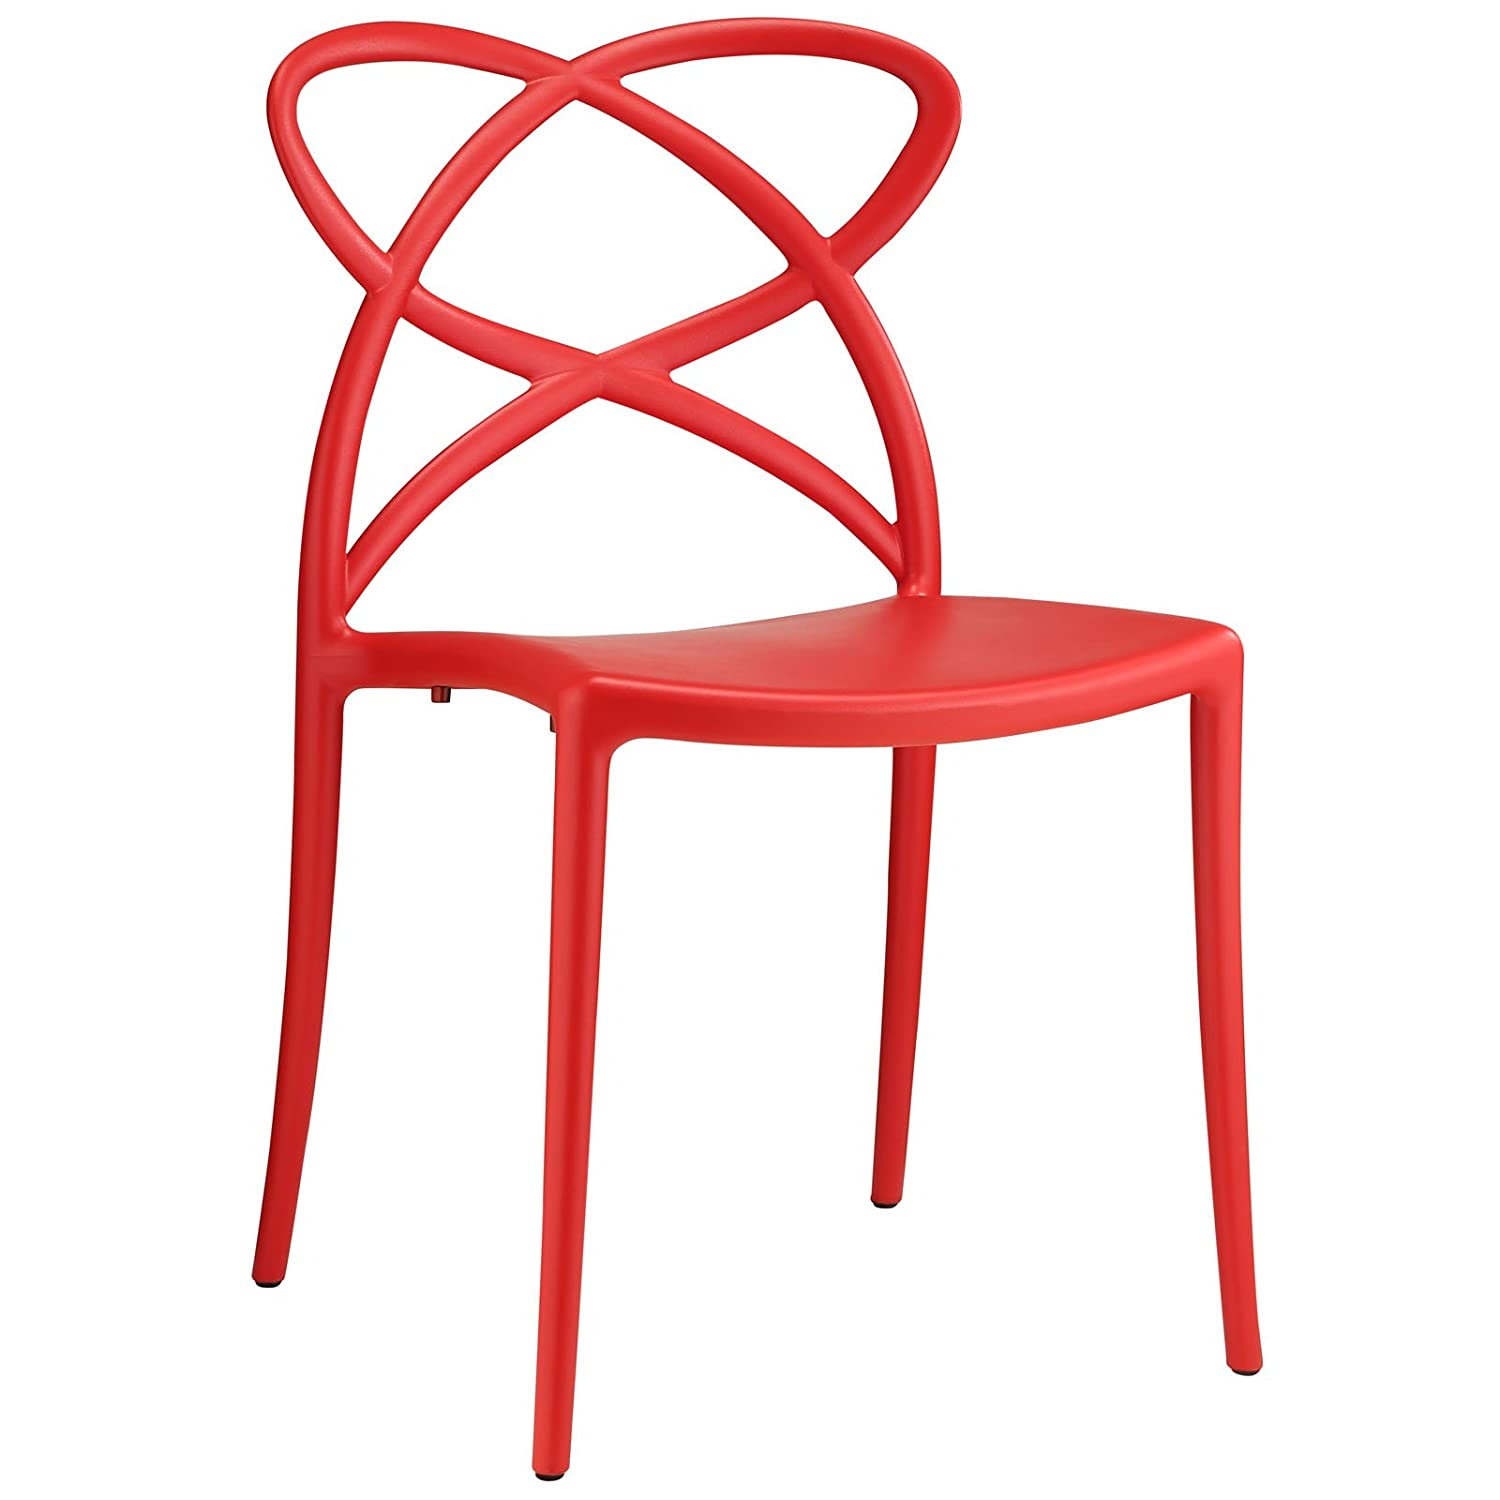 Modway Enact Dining Side Chair, Orange Modway© EEI-1492-ORA